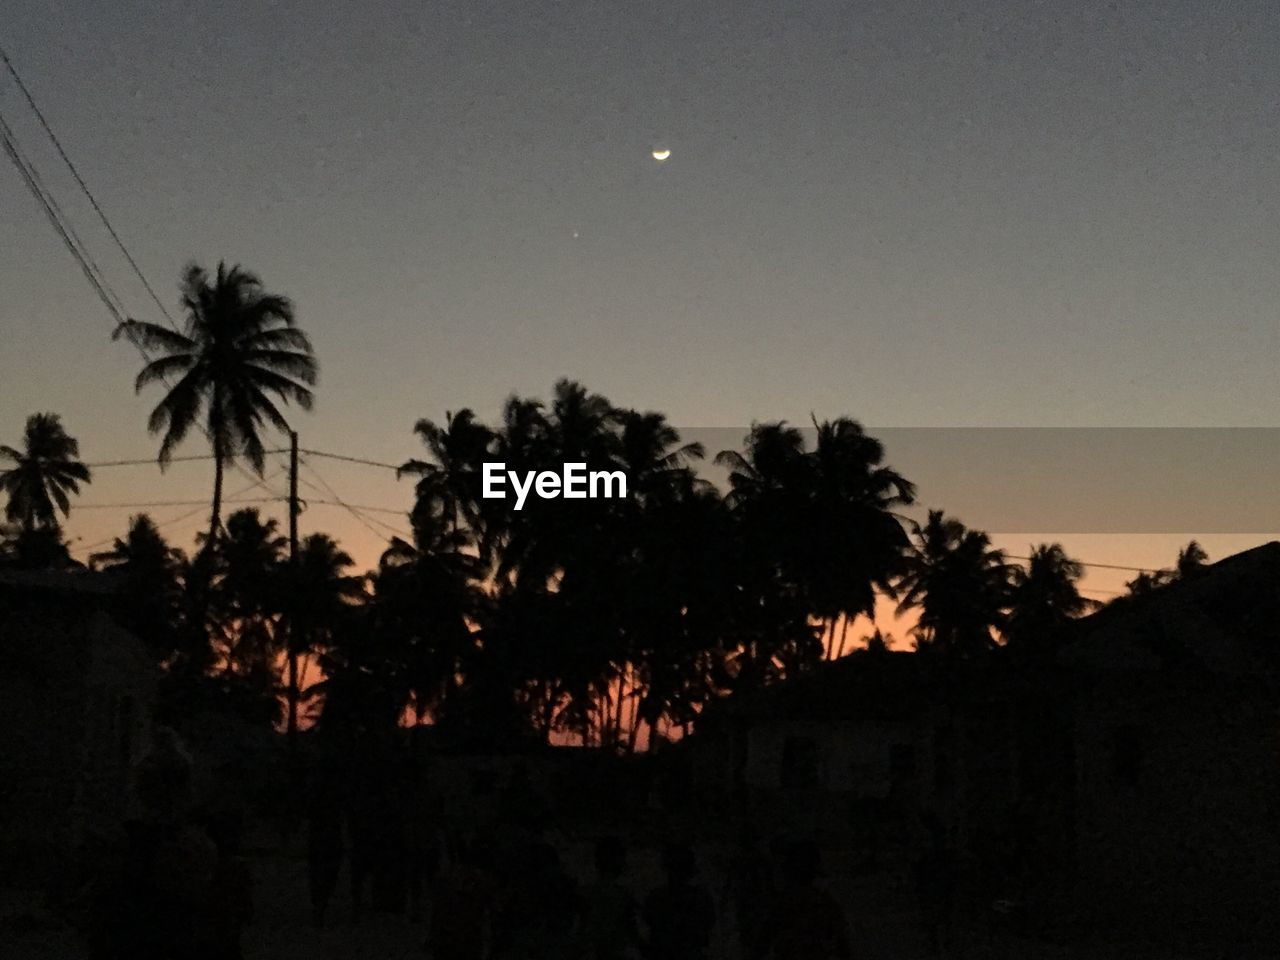 tree, moon, silhouette, palm tree, nature, night, scenics, sky, no people, beauty in nature, sunset, tranquility, tranquil scene, growth, clear sky, outdoors, astronomy